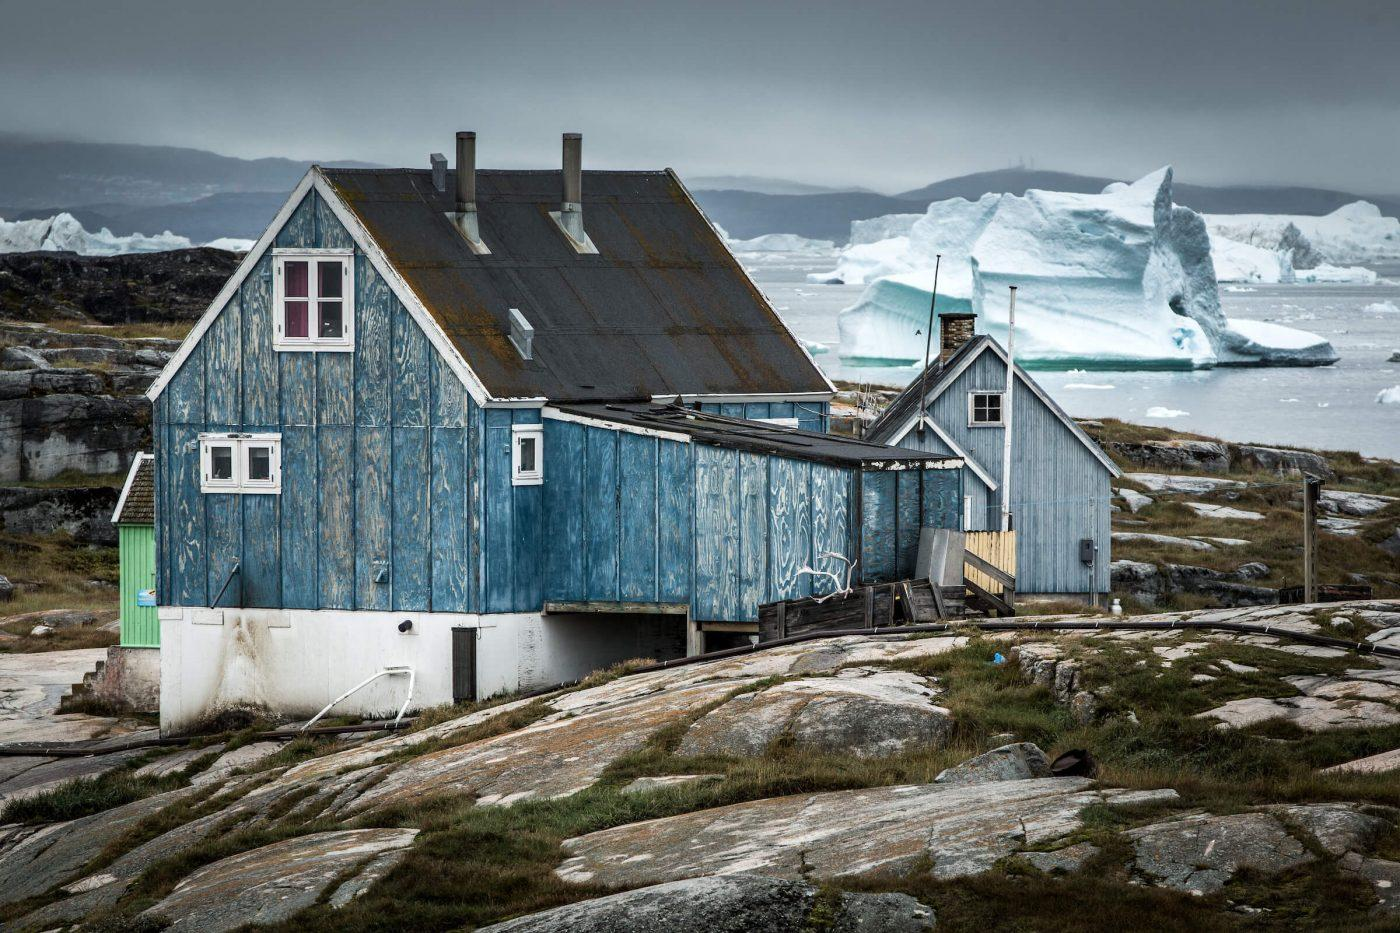 Houses with icebergs in the background in Oqaatsut, Greenland. By Mads Pihl